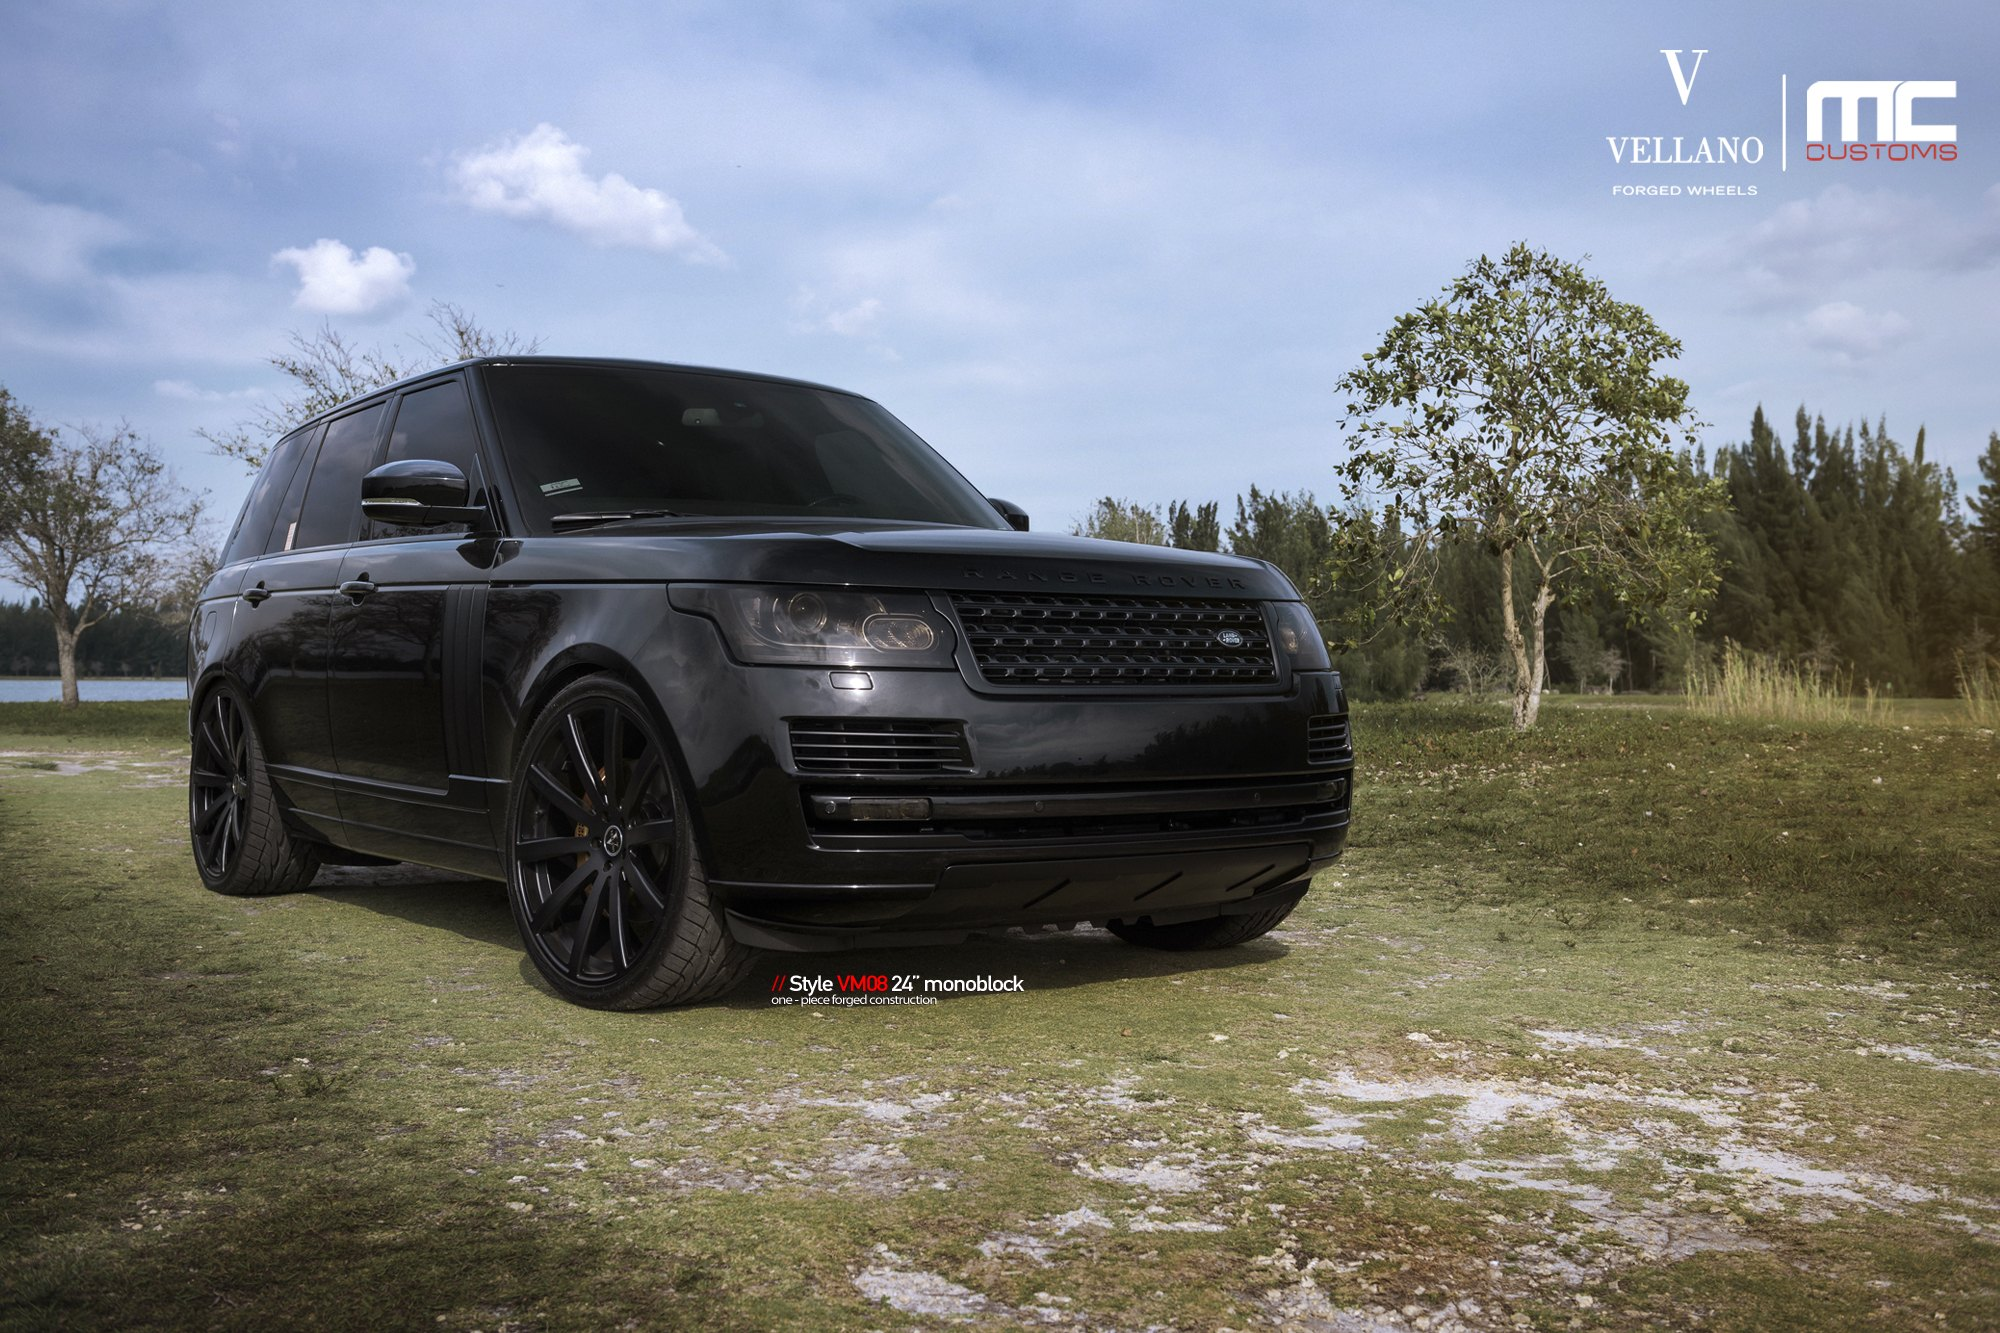 Fashionable Blacked Out Range Rover by MC Customs — CARiD Gallery